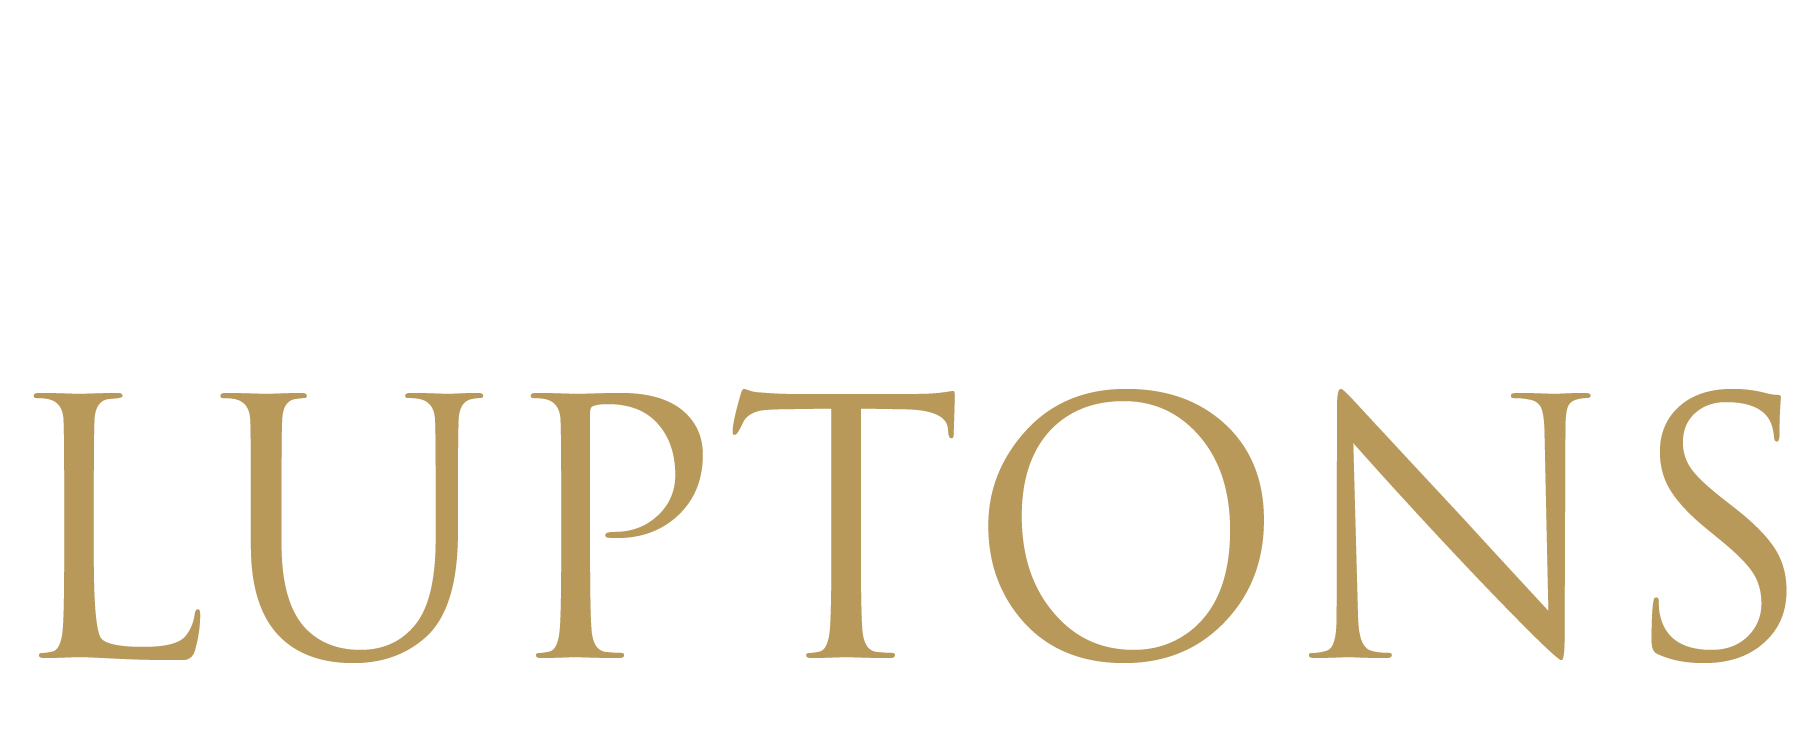 https://allied-luptons.co.uk/wp-content/uploads/2020/09/AL2w.png